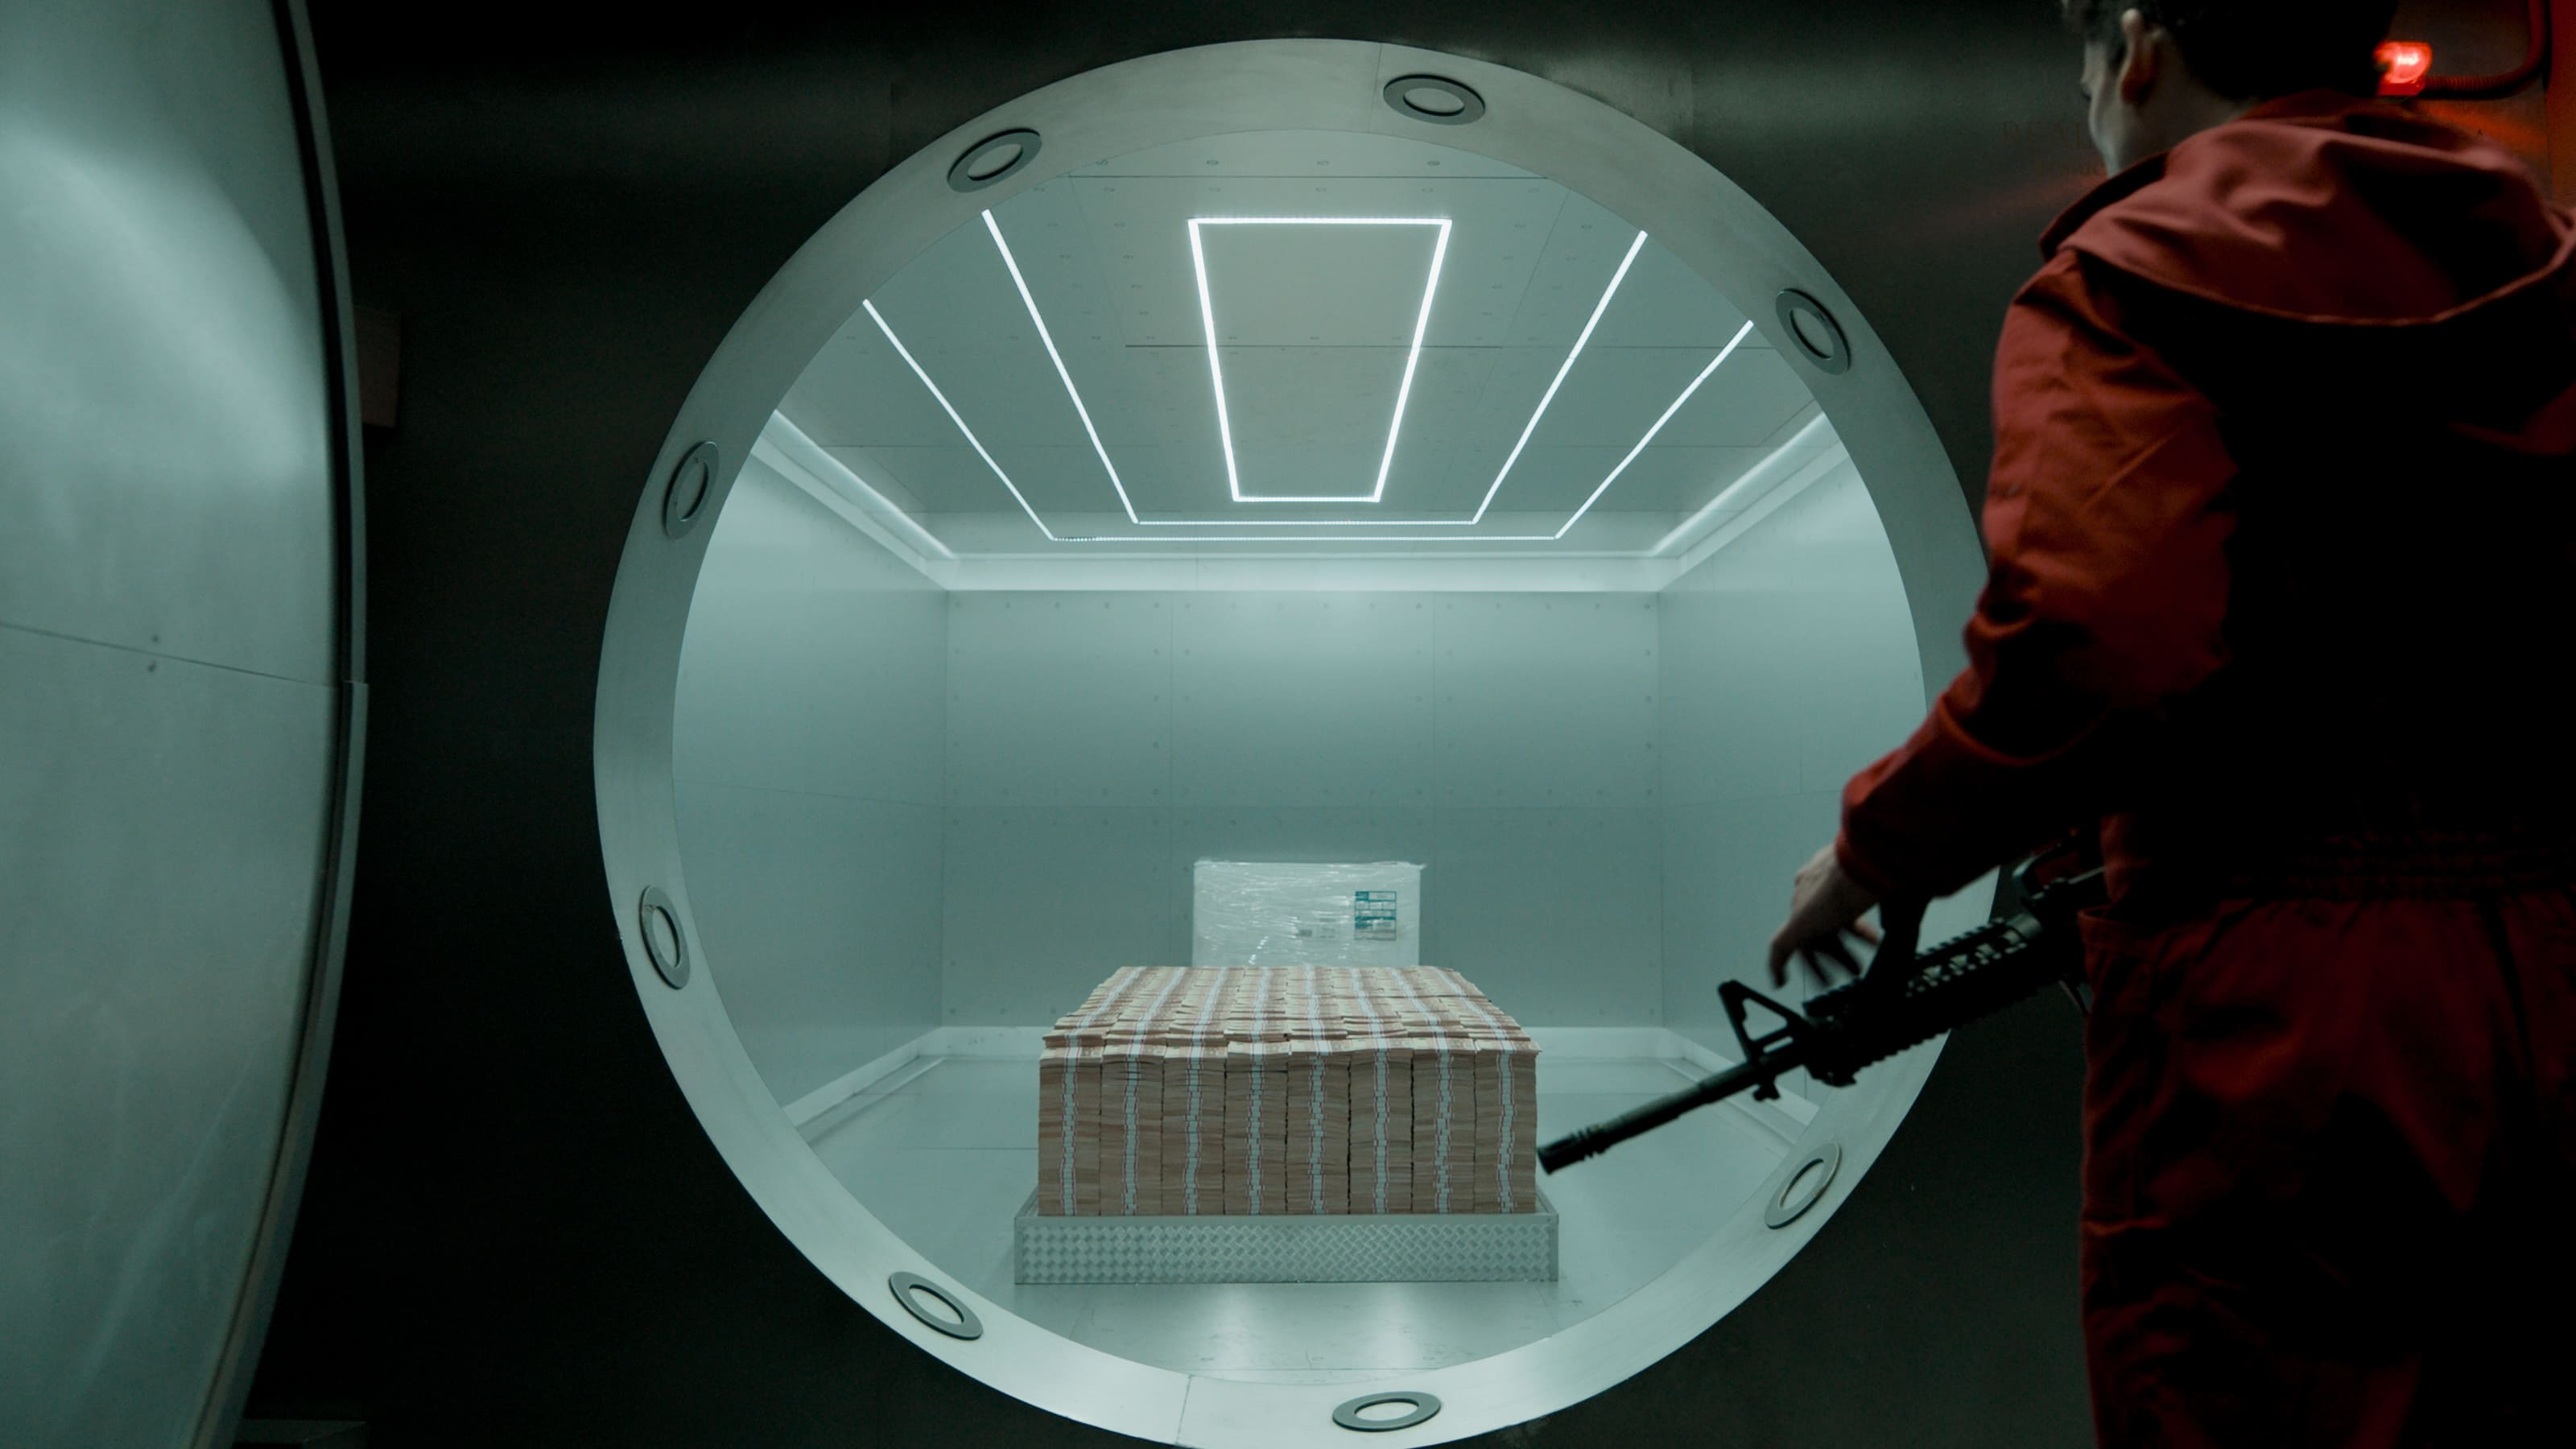 Money Heist: Season 1 Episode 1 S01E01 Watch Openload Free TV Full